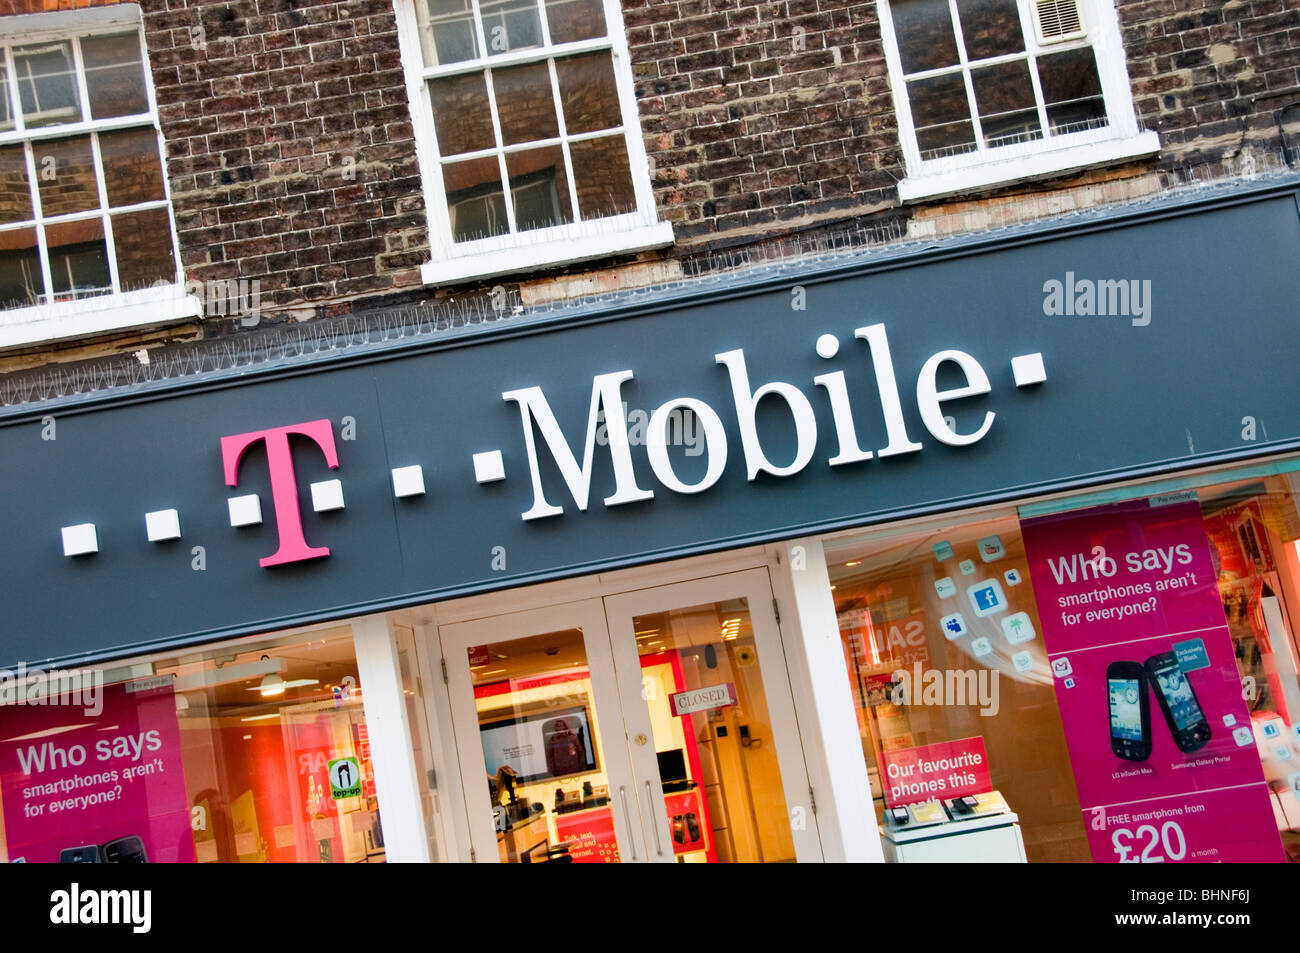 T Mobile Shop Amsterdam Amsterdam Tmobile Stock Photos Tmobile Stock Images Alamy